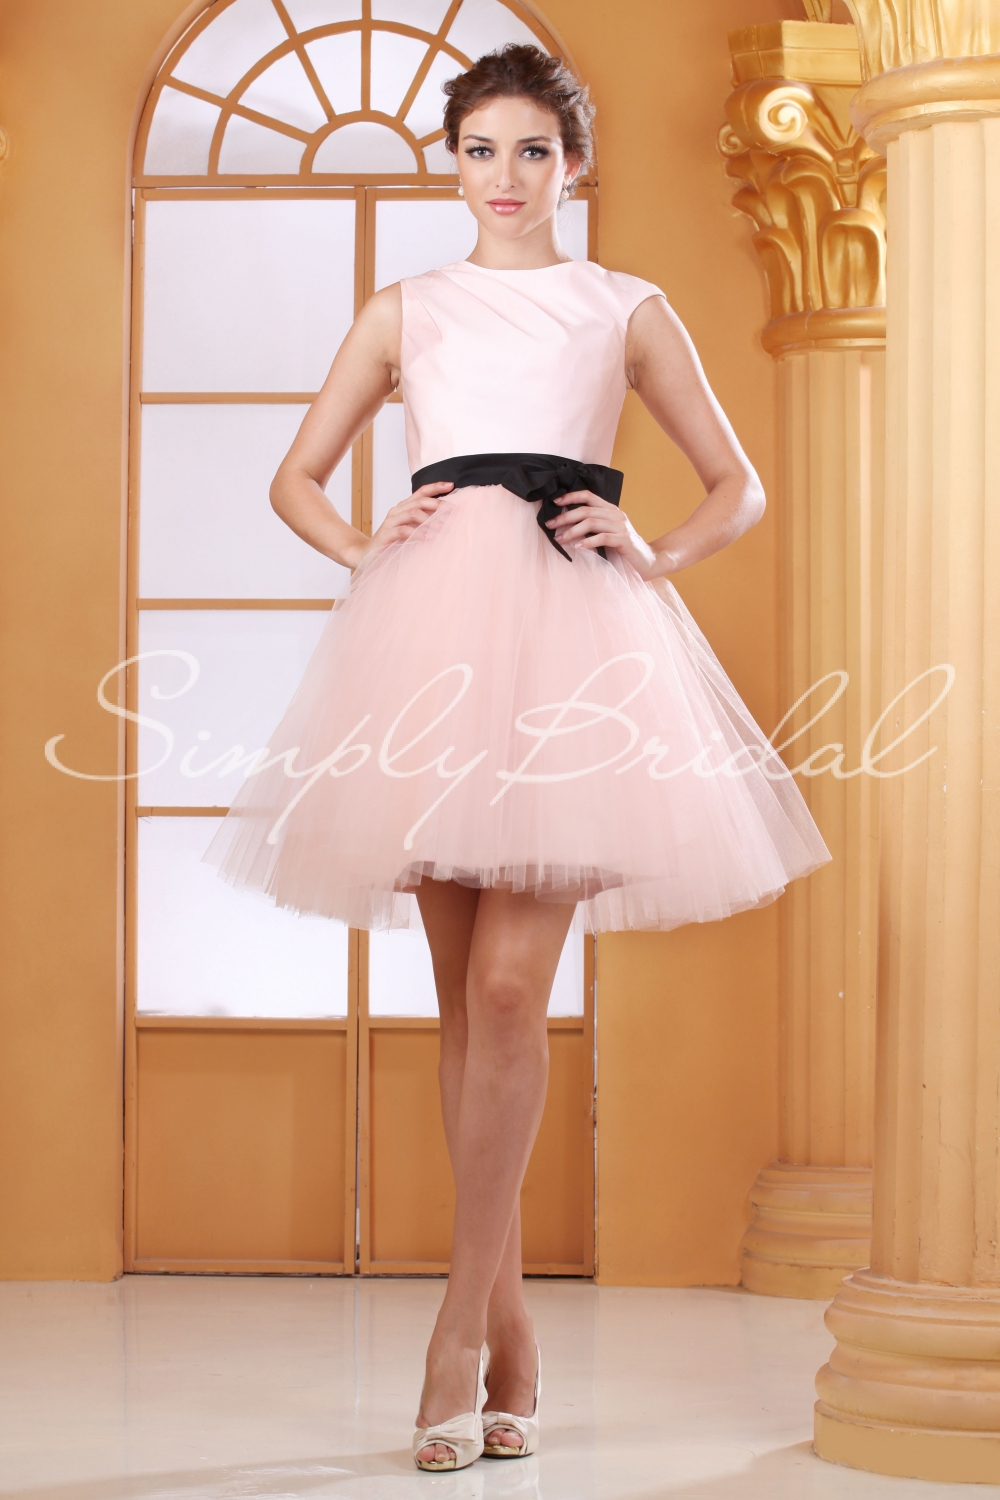 simply-bridal-pink-short-wedding-dress